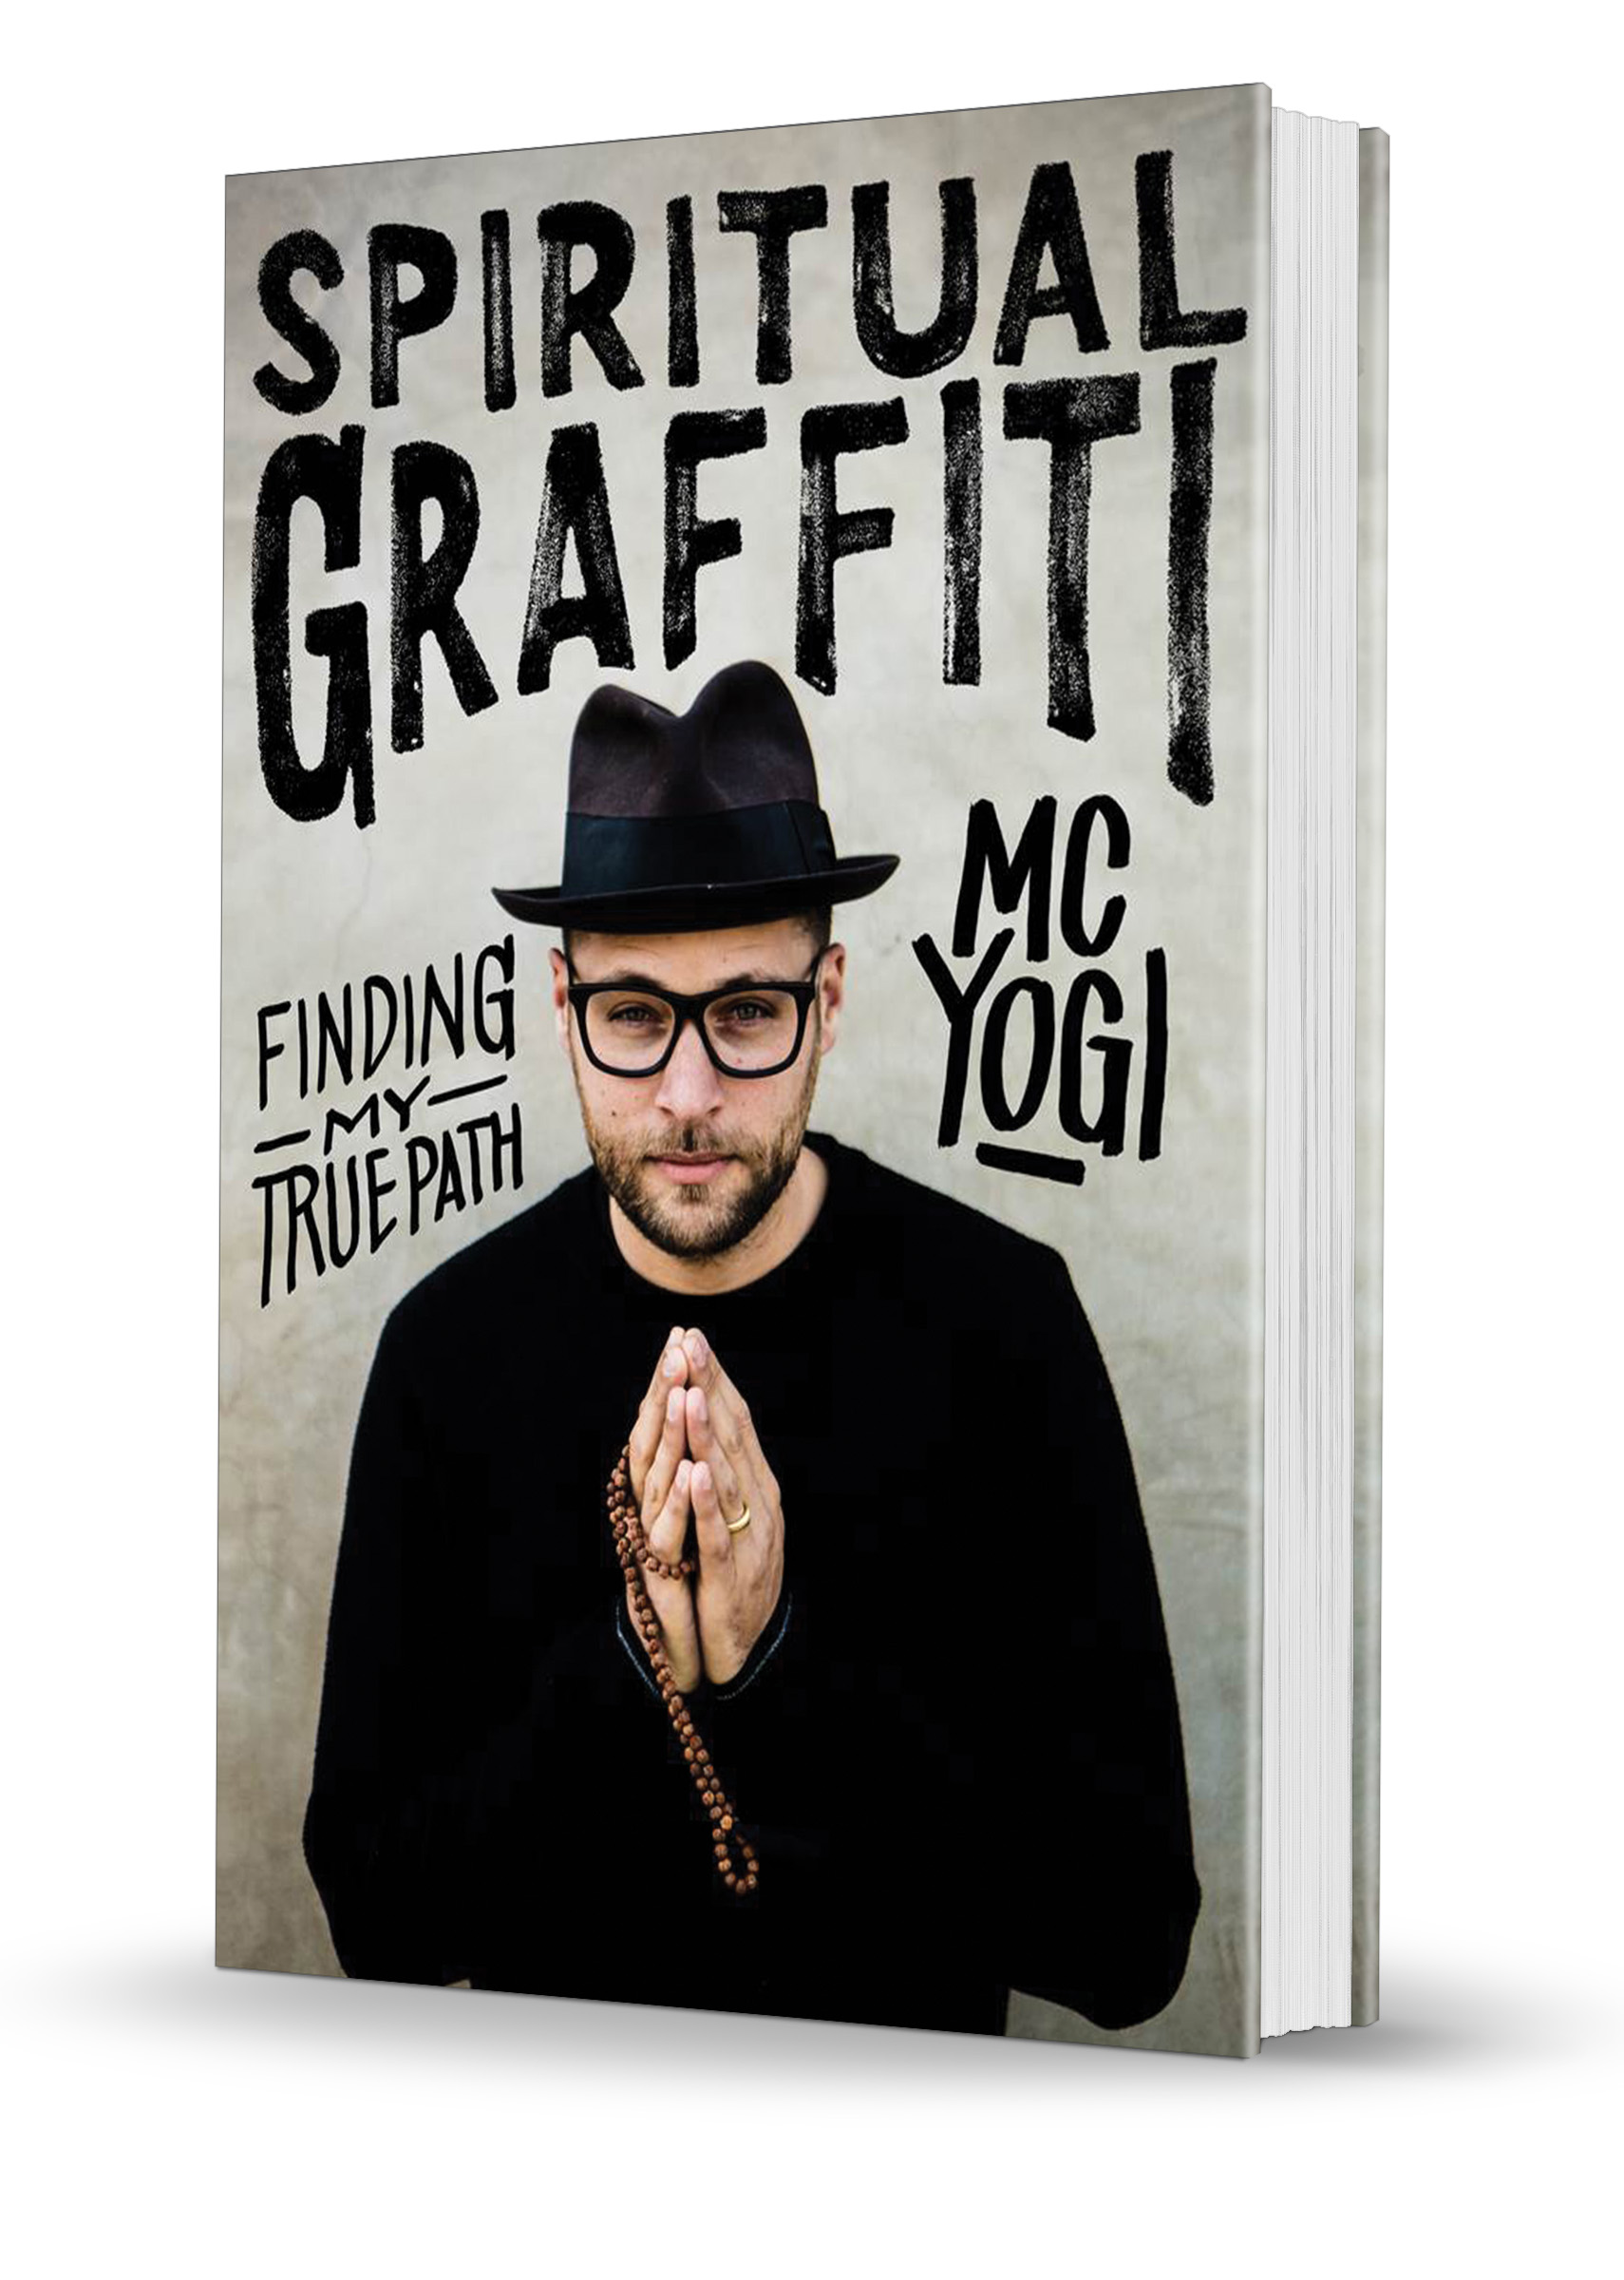 Hip-hop artist and famed yoga teacher MC YOGI offers his wisdom and inspiration for spiritual seekers in this enlightening memoir, which recounts his journey from a troubled youth to becoming a successful musical pioneer and one of the most beloved yoga teachers in North America.